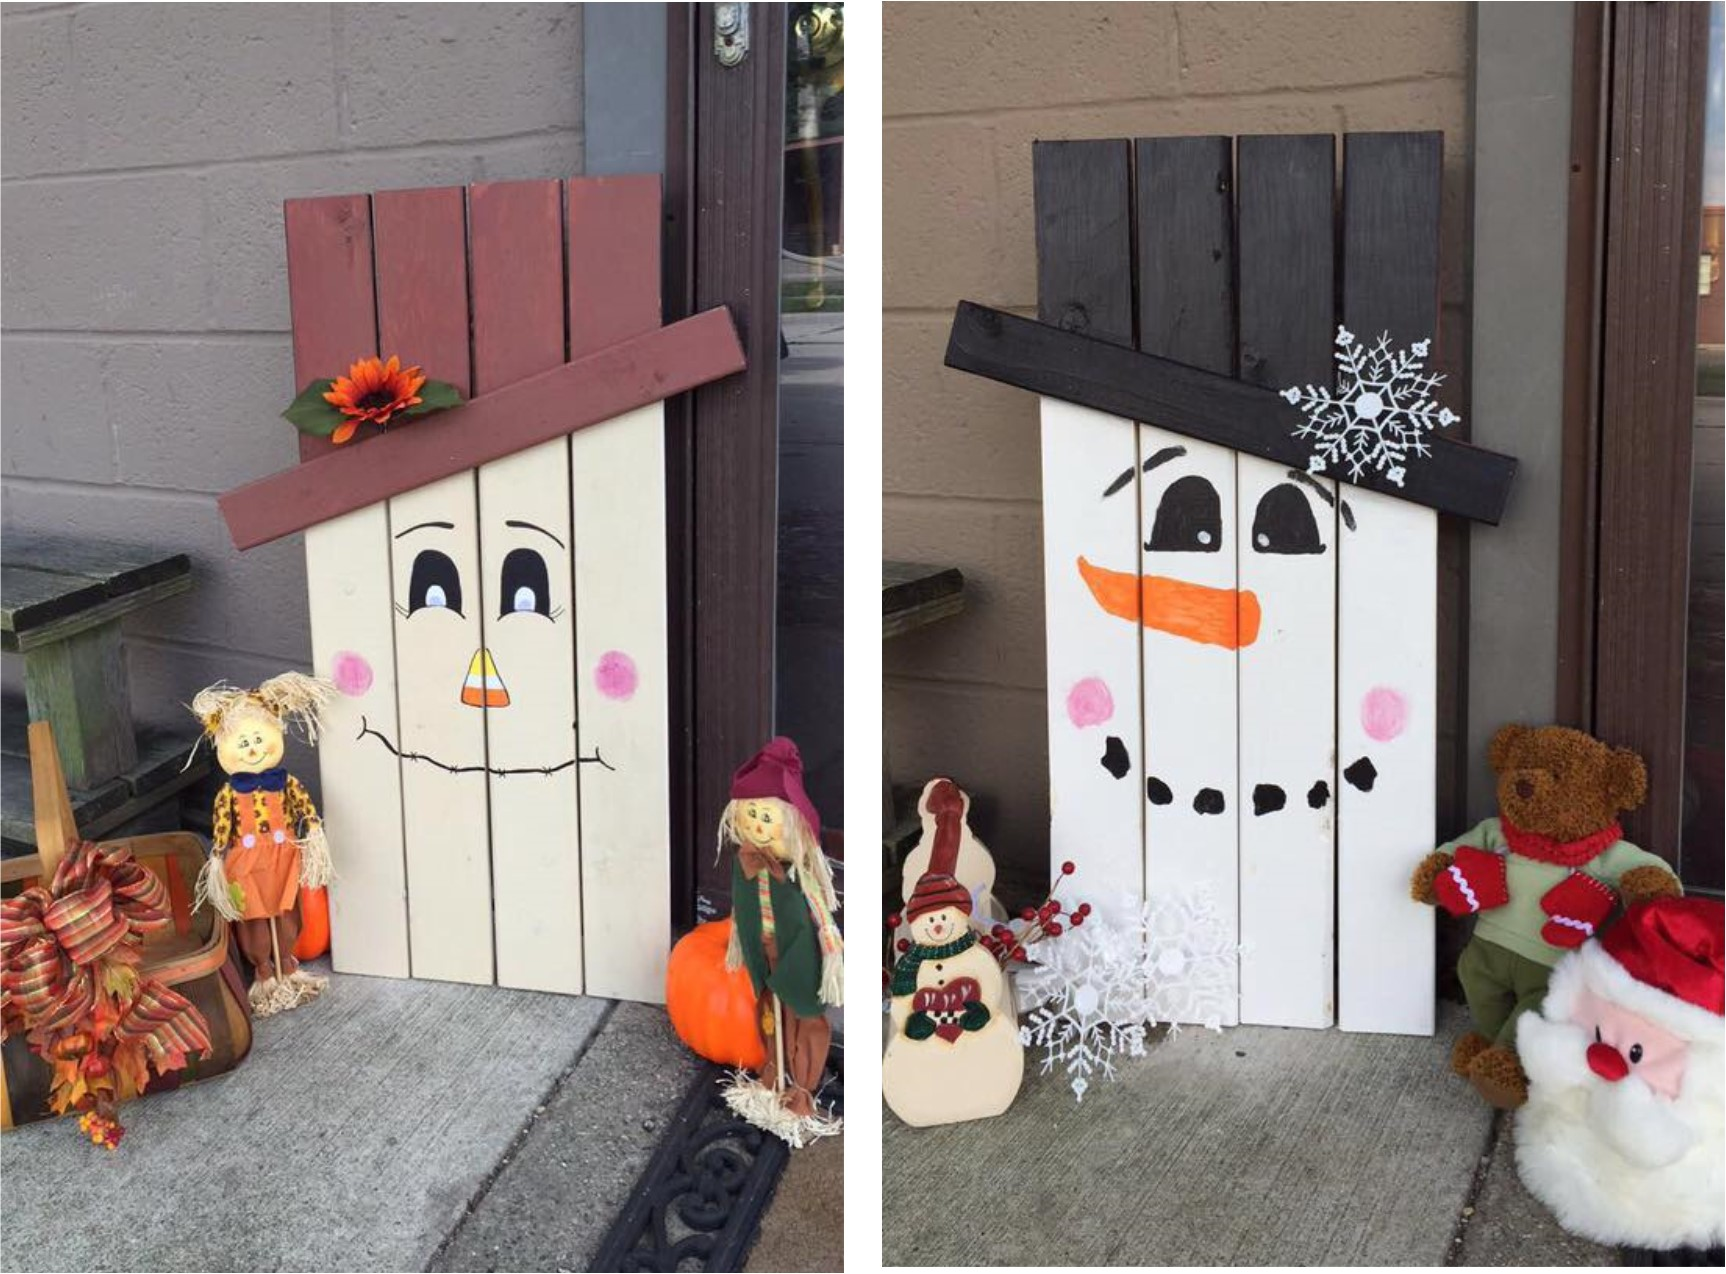 Large Reversible Snowman/ScarecrowWooden Decoration - Ring in the fall and winter seasons with a cute (and reversible) Festive Scarecrow and Jolly Snowman for your home! Made of wooden pallets, one side is painted and decorated as a scarecrow and the other as a snowman - with your personal touch. Paint, draw and adorn your one-of-a-kind, seasonal creation just as you please!Size: 14in x 32.5inCost: $40